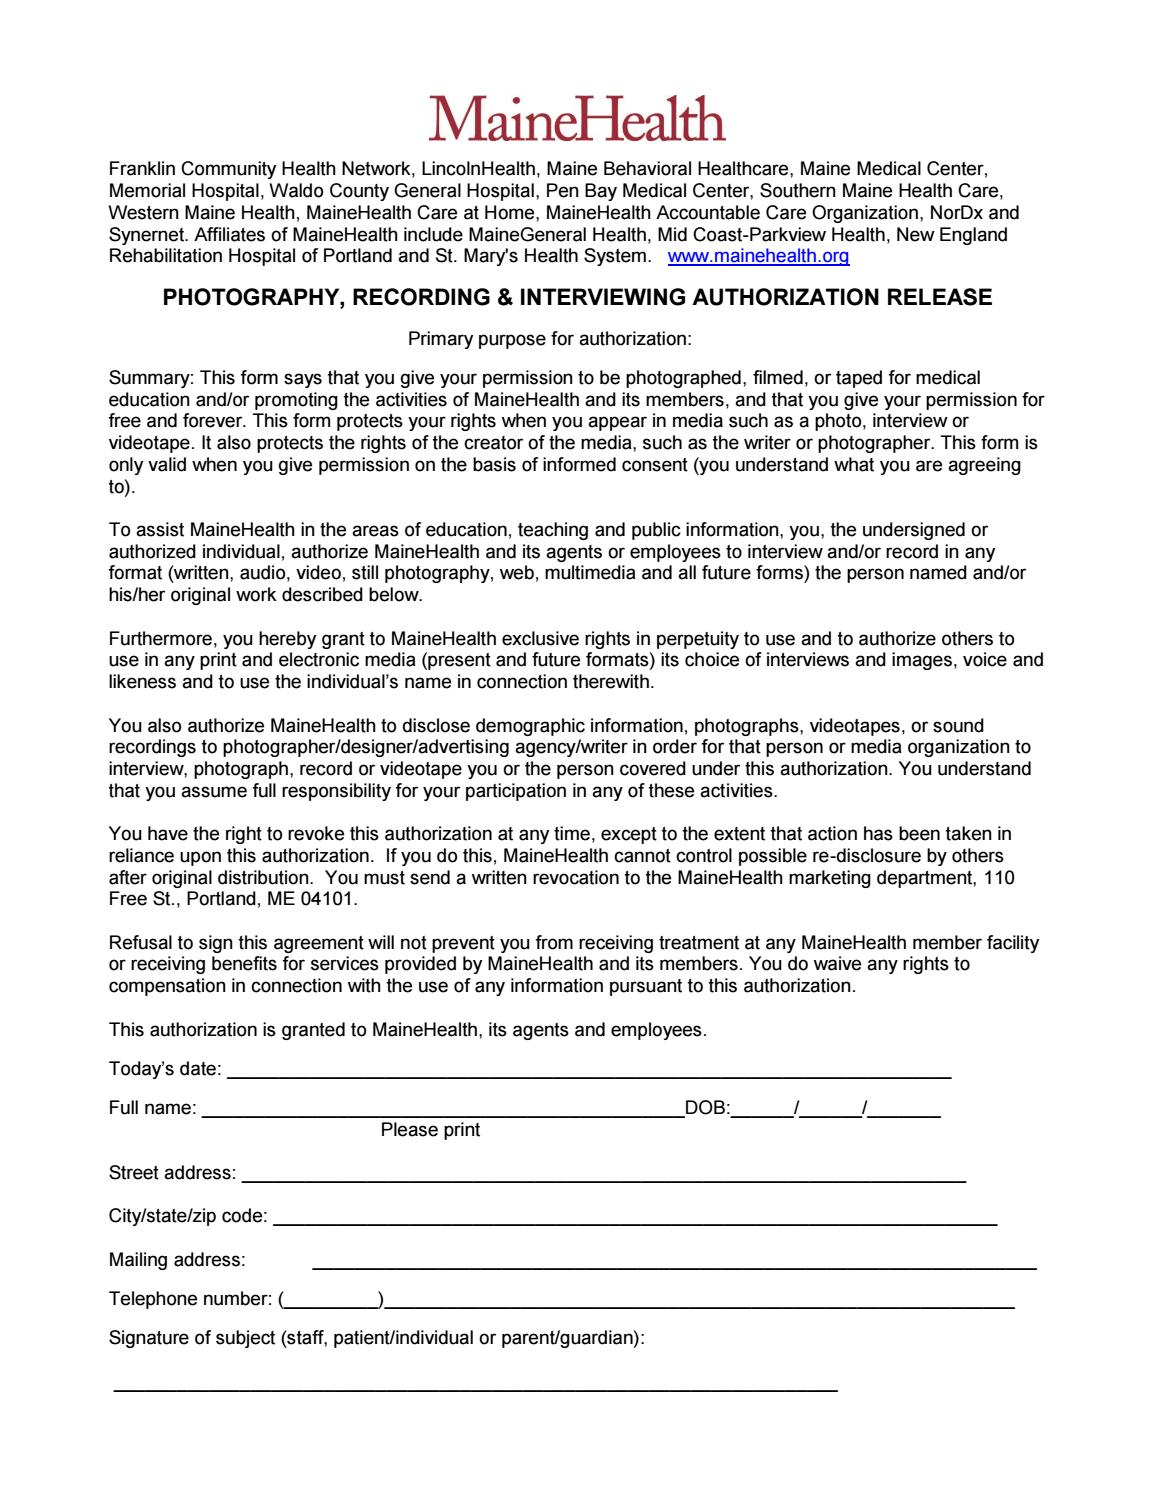 MaineHealth Photo Release Form by Pen Bay Medical Center - issuu